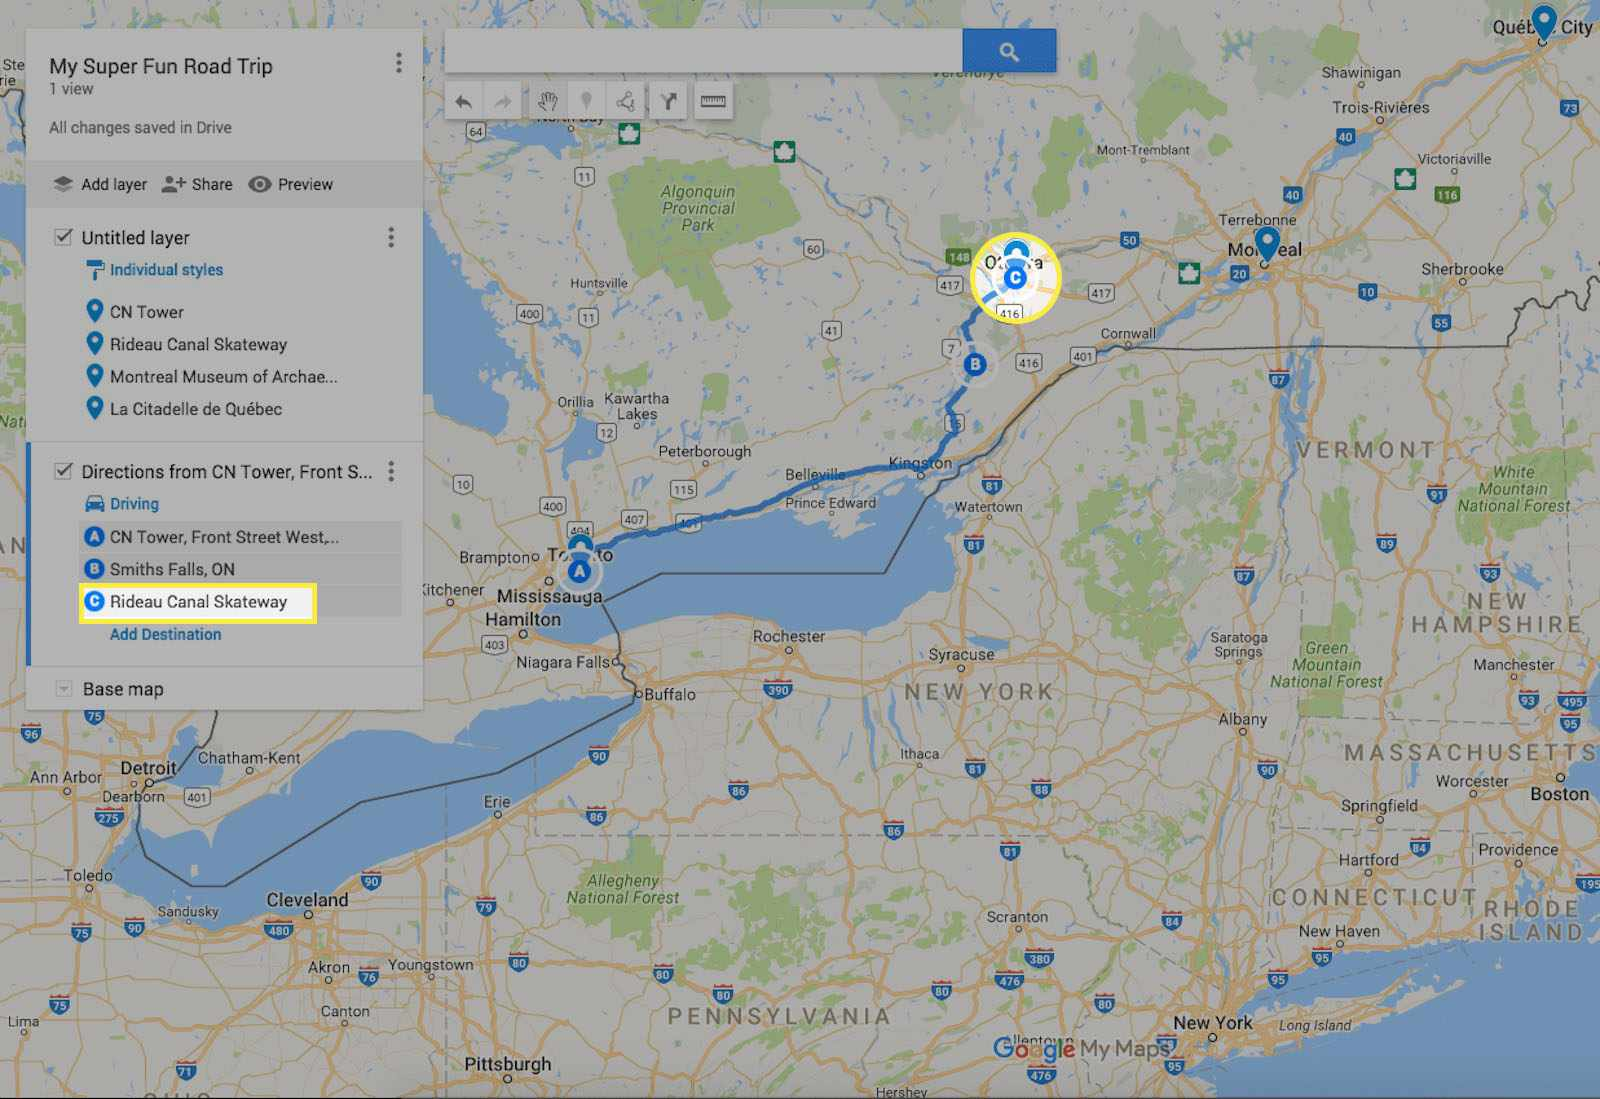 Adding more destination points in Google My Maps.